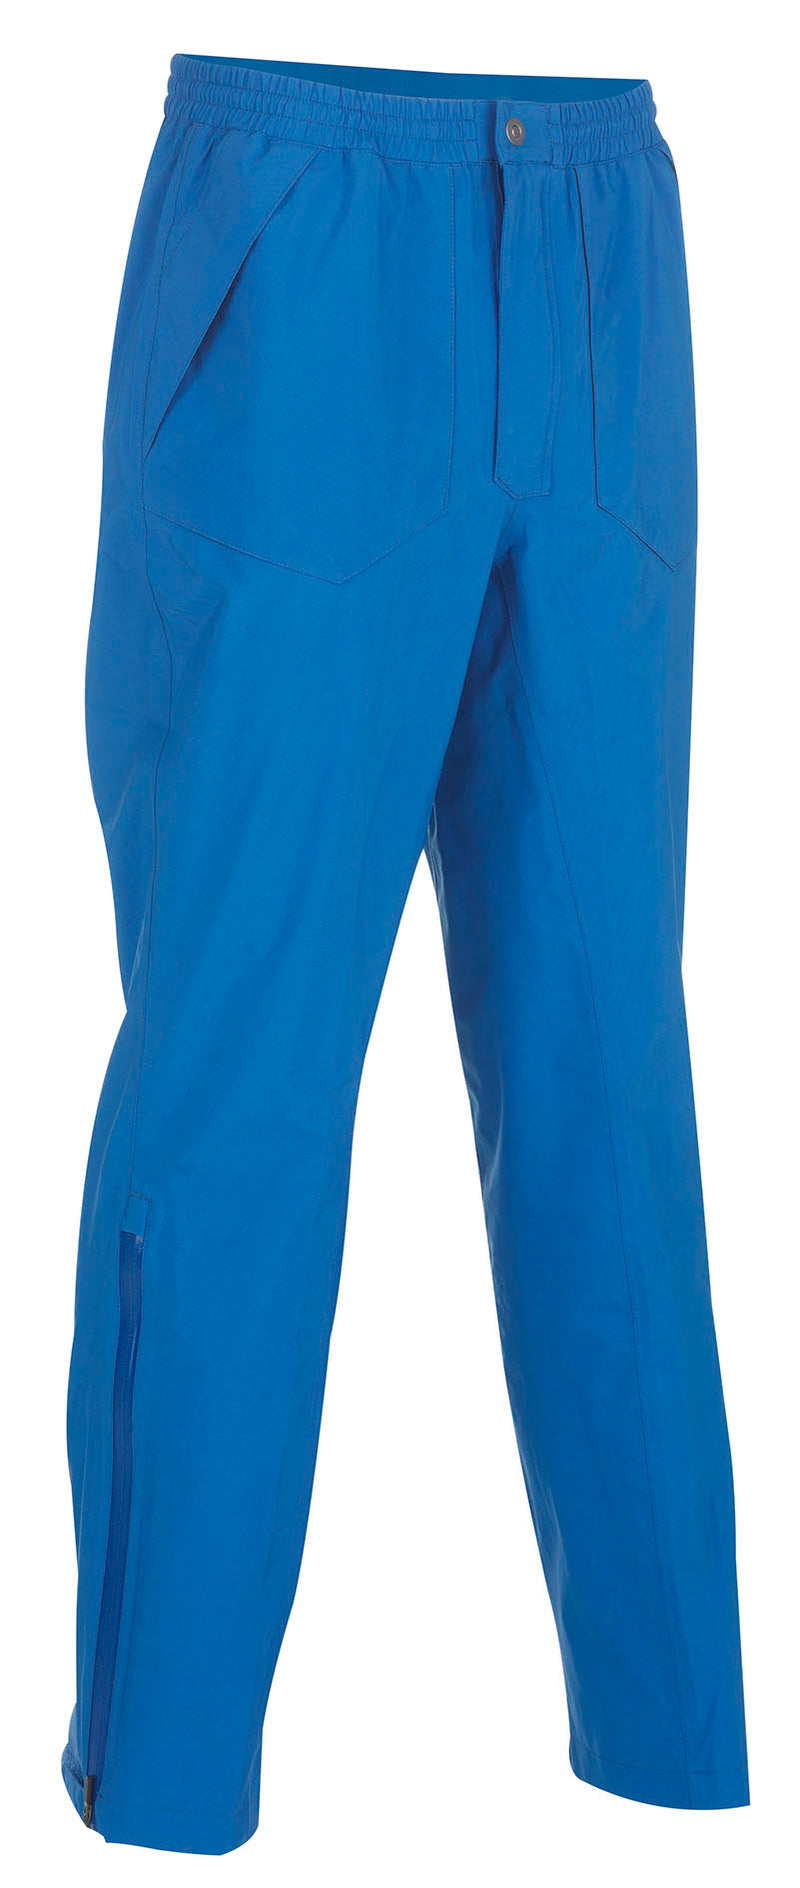 IMPERIAL BLUE AUGUST GORE-TEX PACLITE TROUSERS   -  AW17